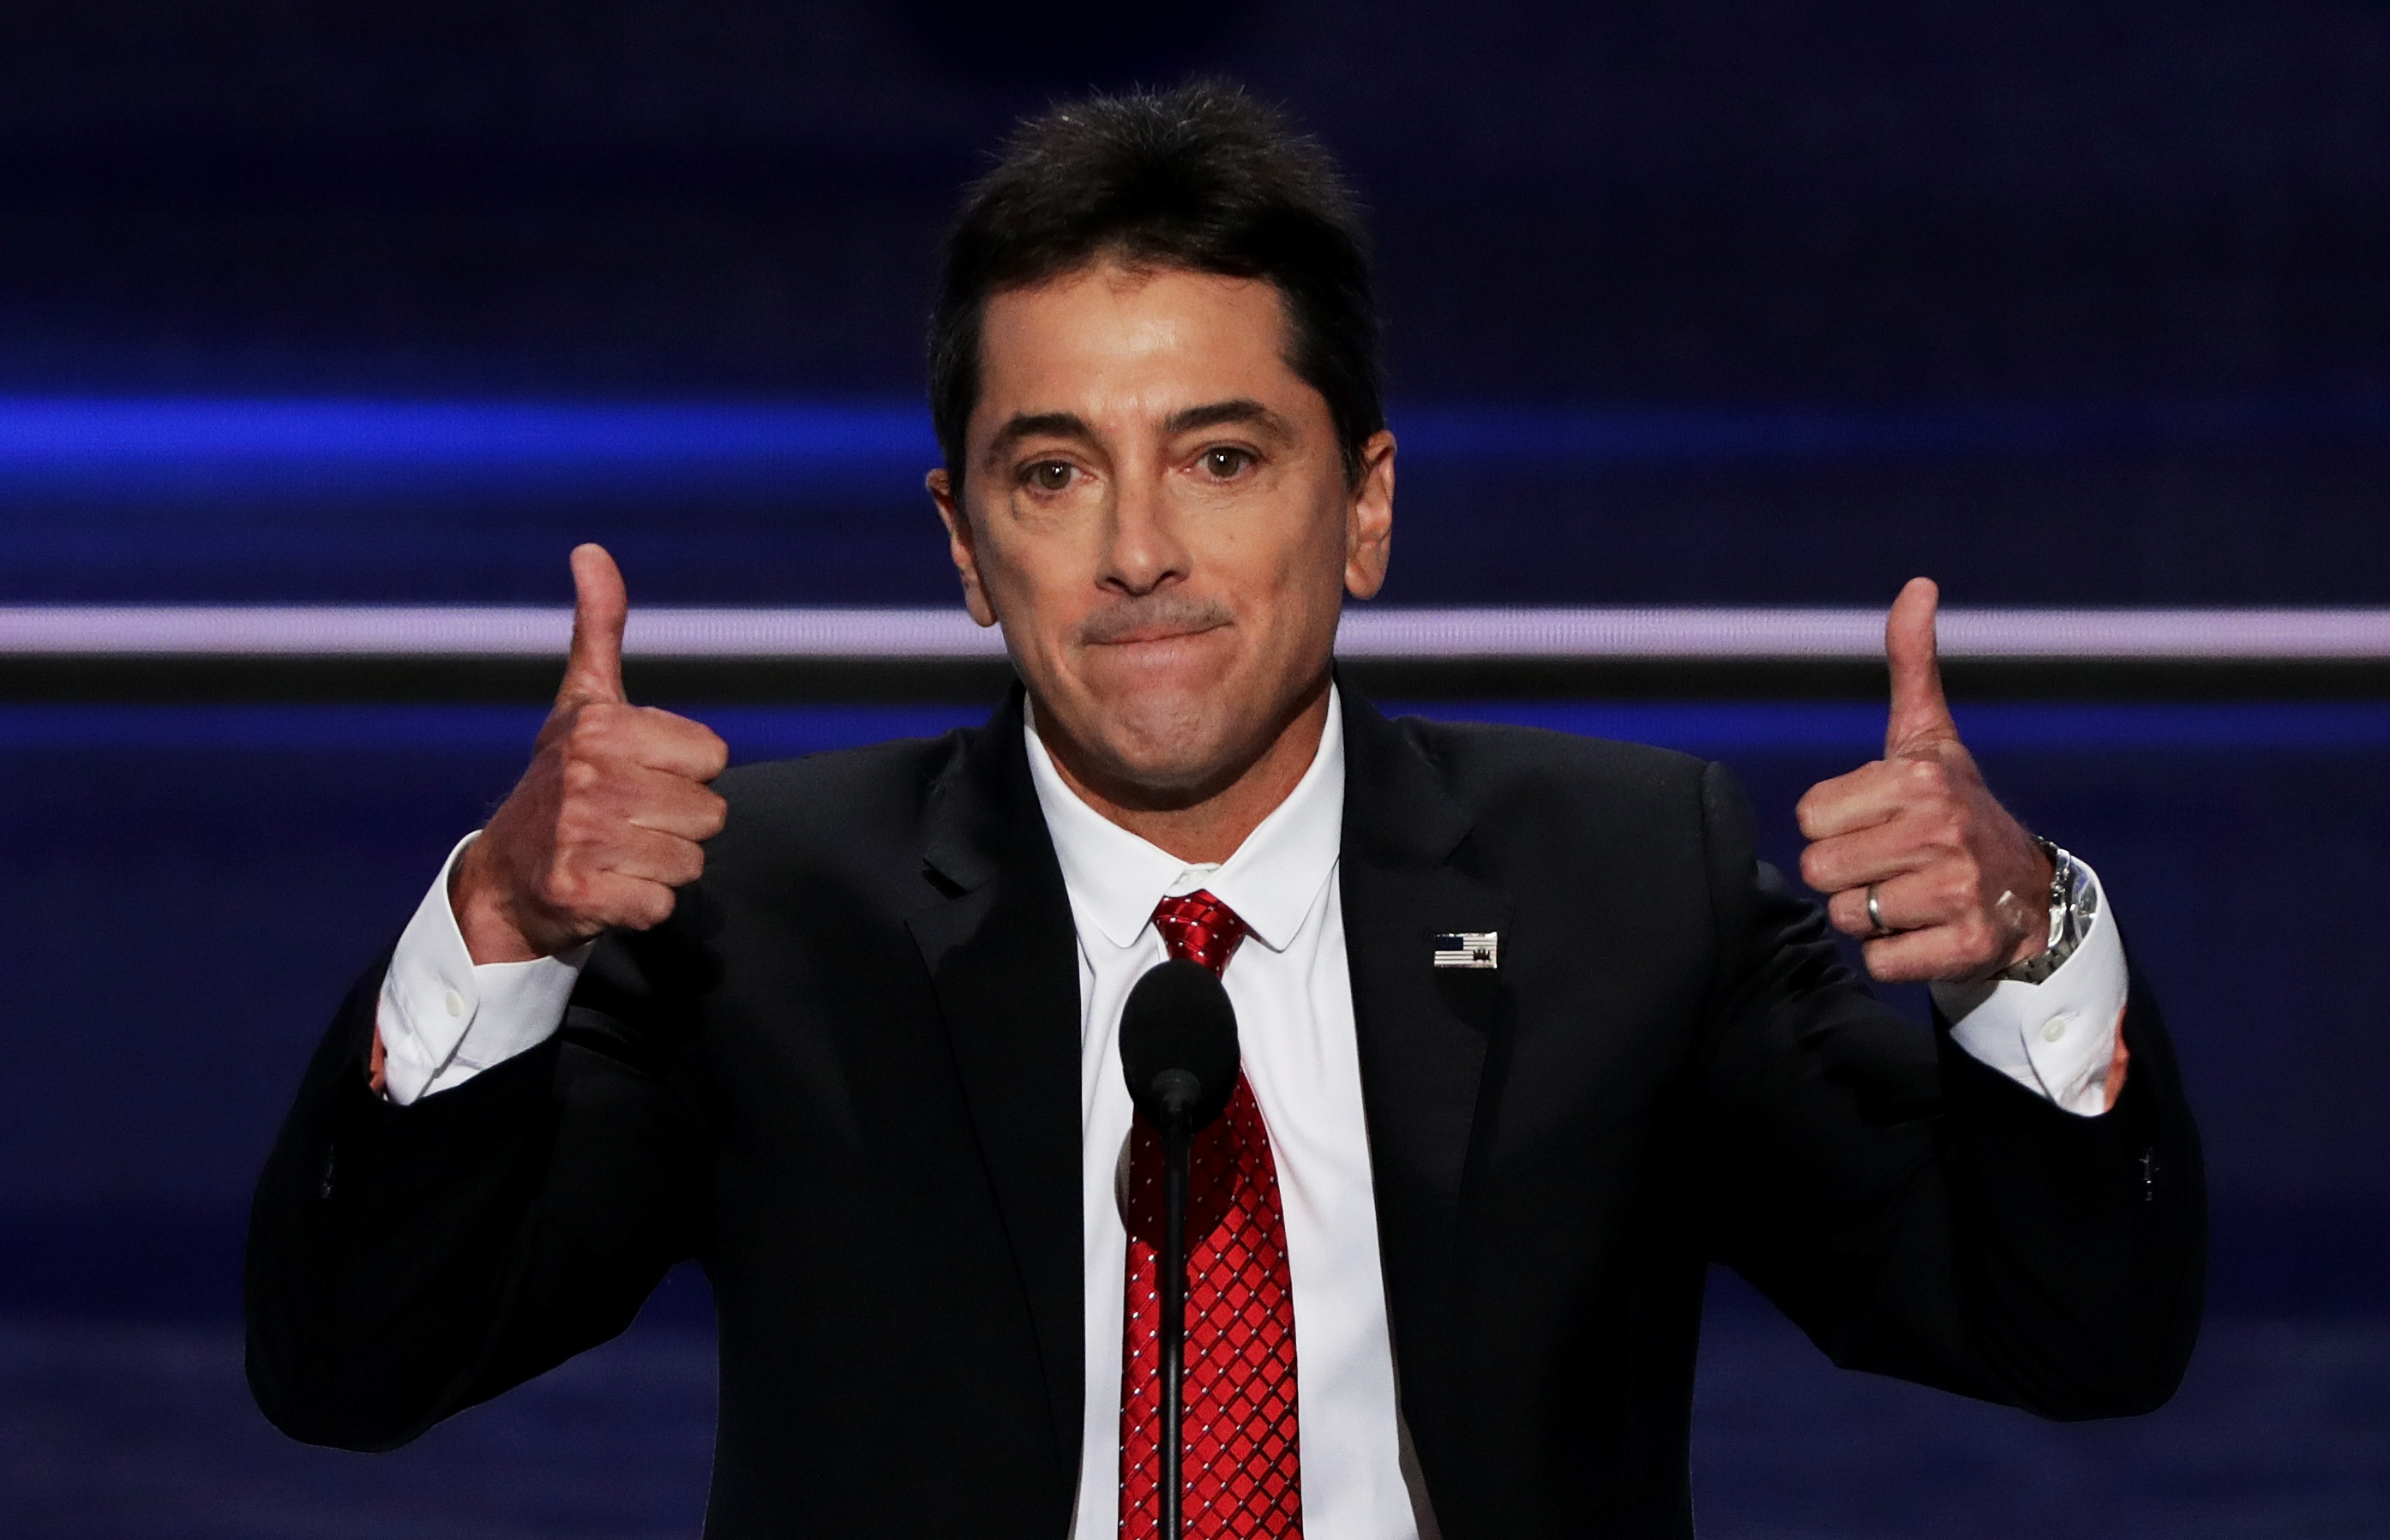 Scott Baio gives two thumbs up during his speech on the first day of the Republican National Convention at the Quicken Loans Arena in Cleveland.  (Alex Wong/Getty Images)